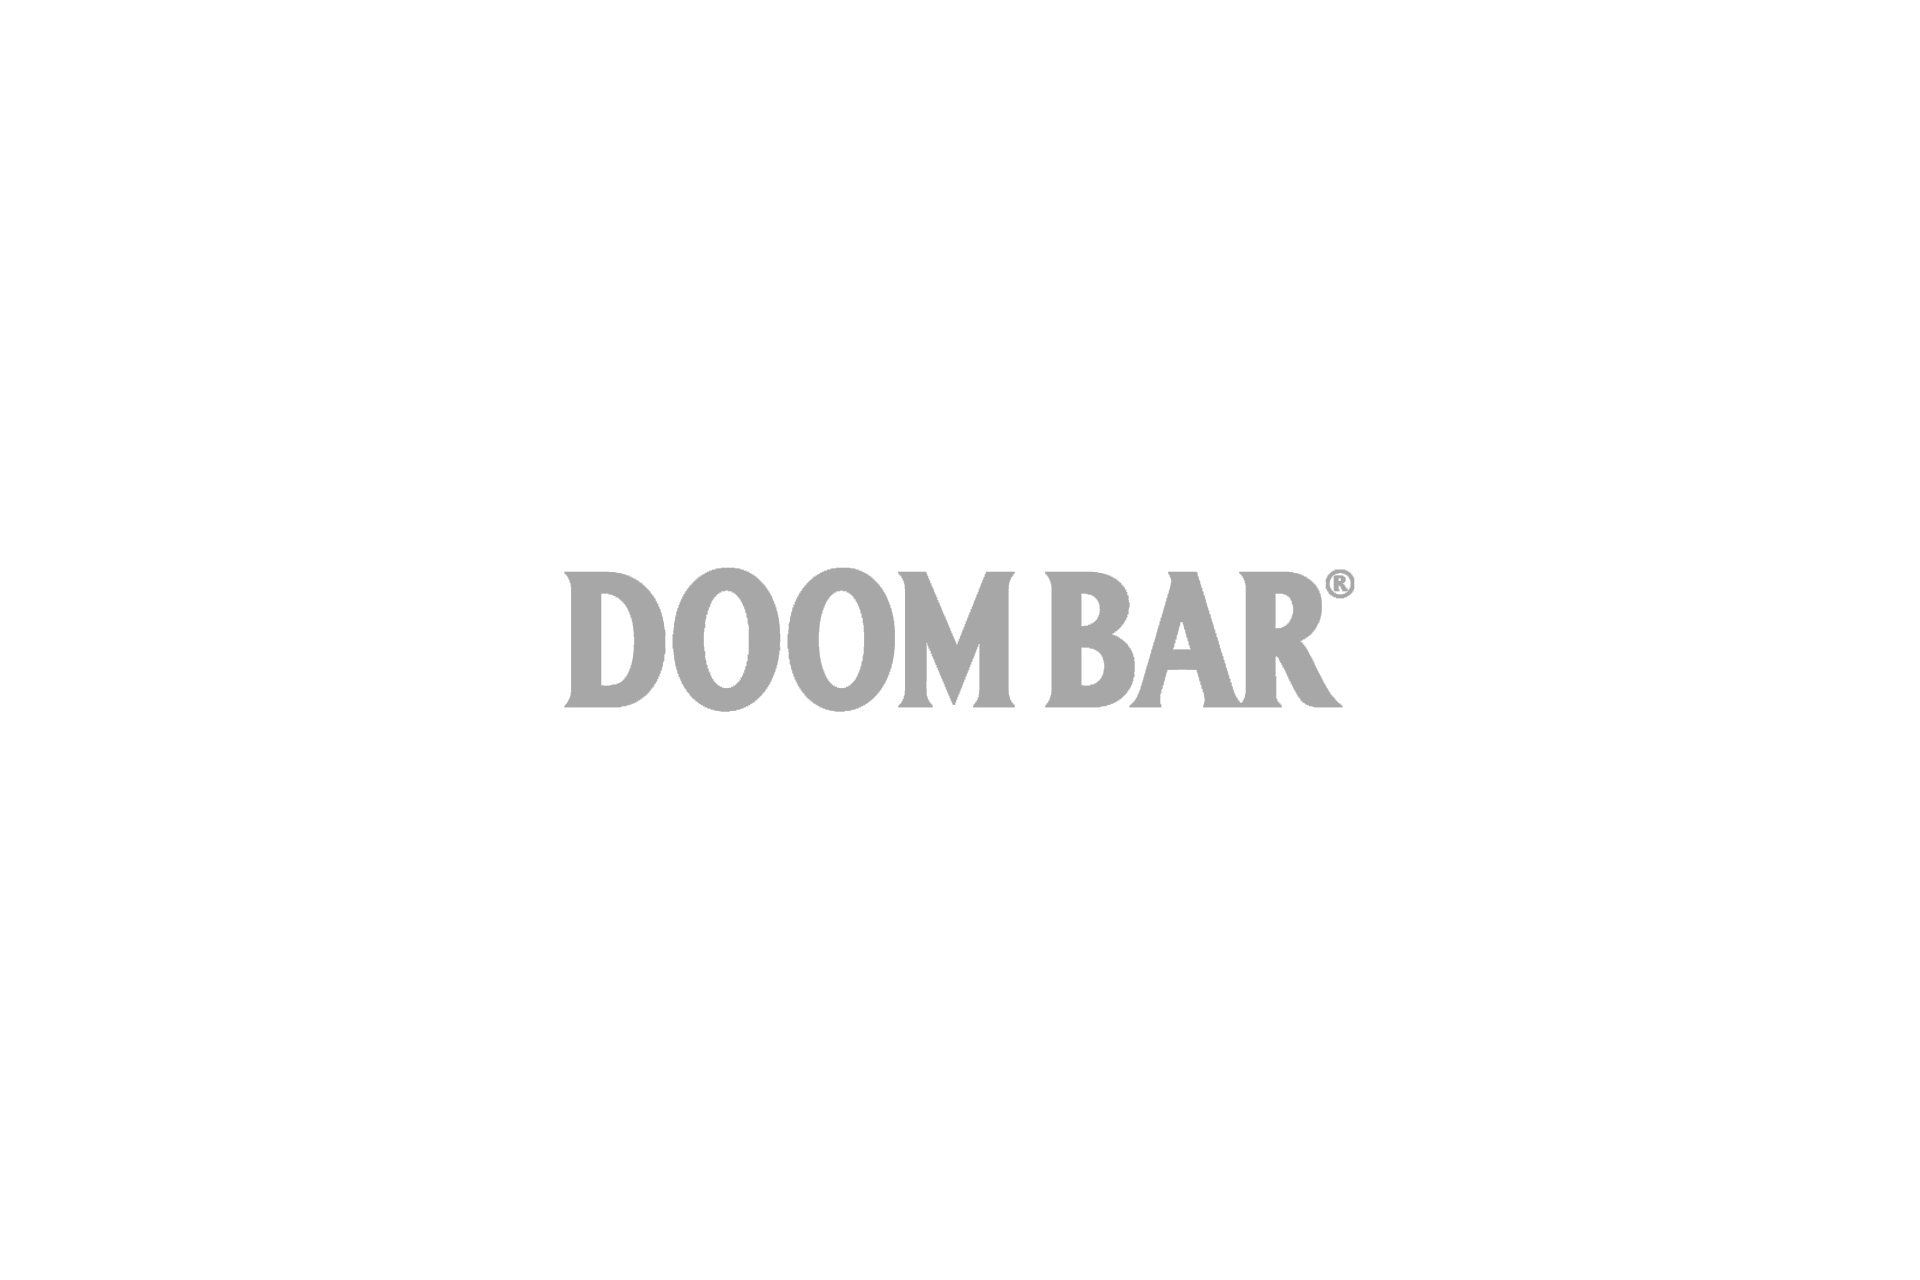 doom bar logo grey